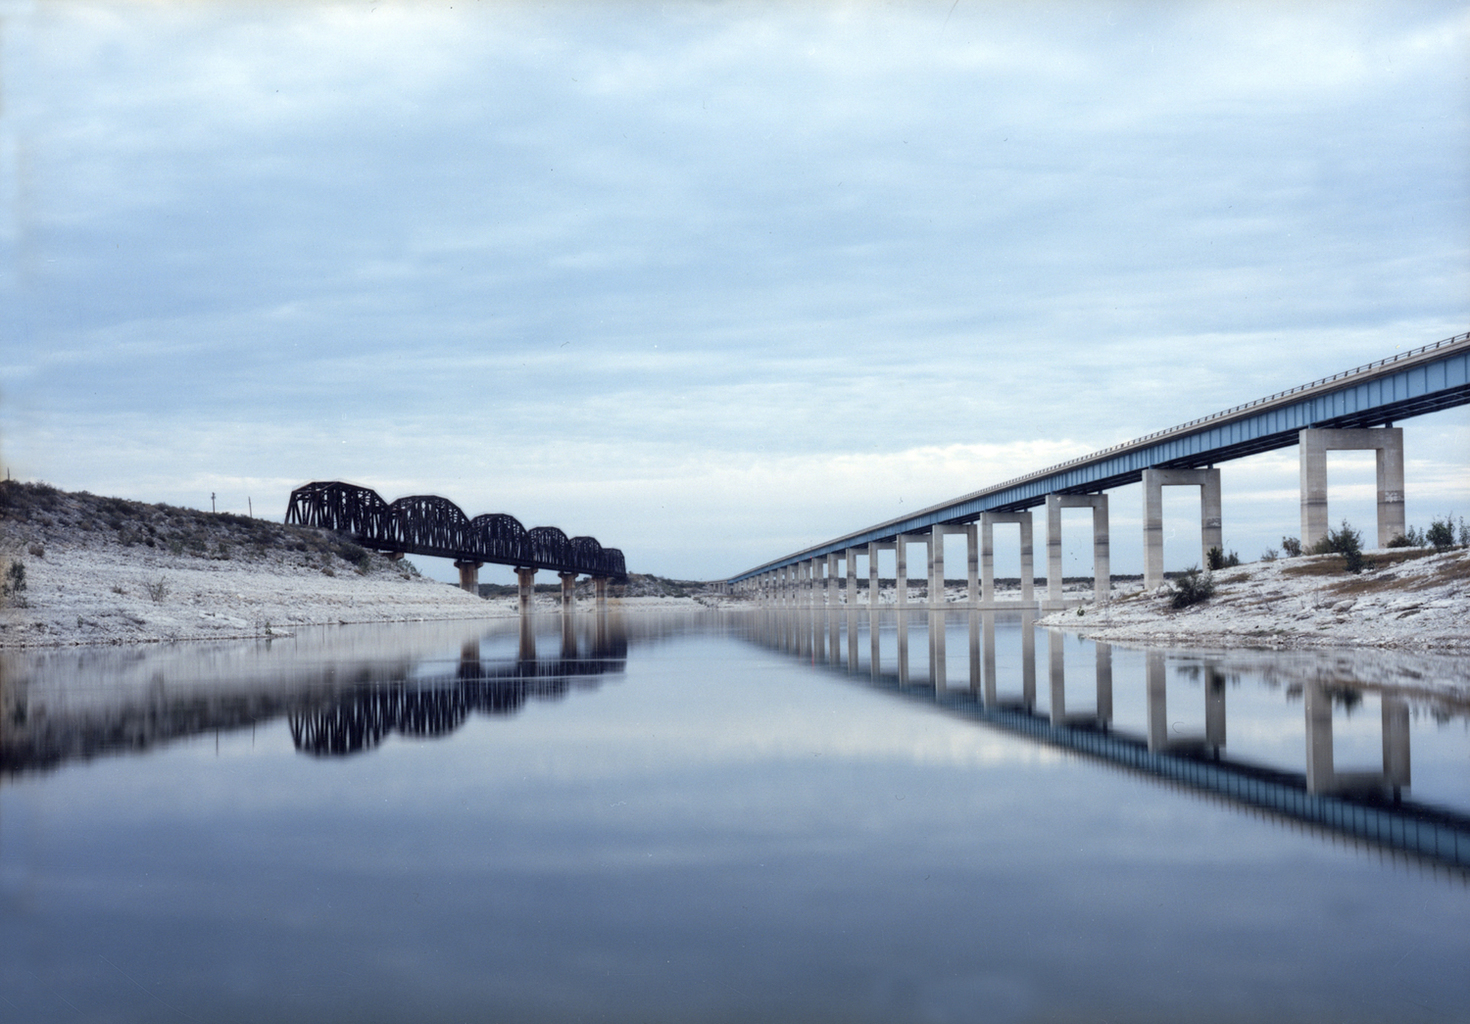 Untitled (bridges), Del Rio, Texas 2013  © Victoria Sambunaris